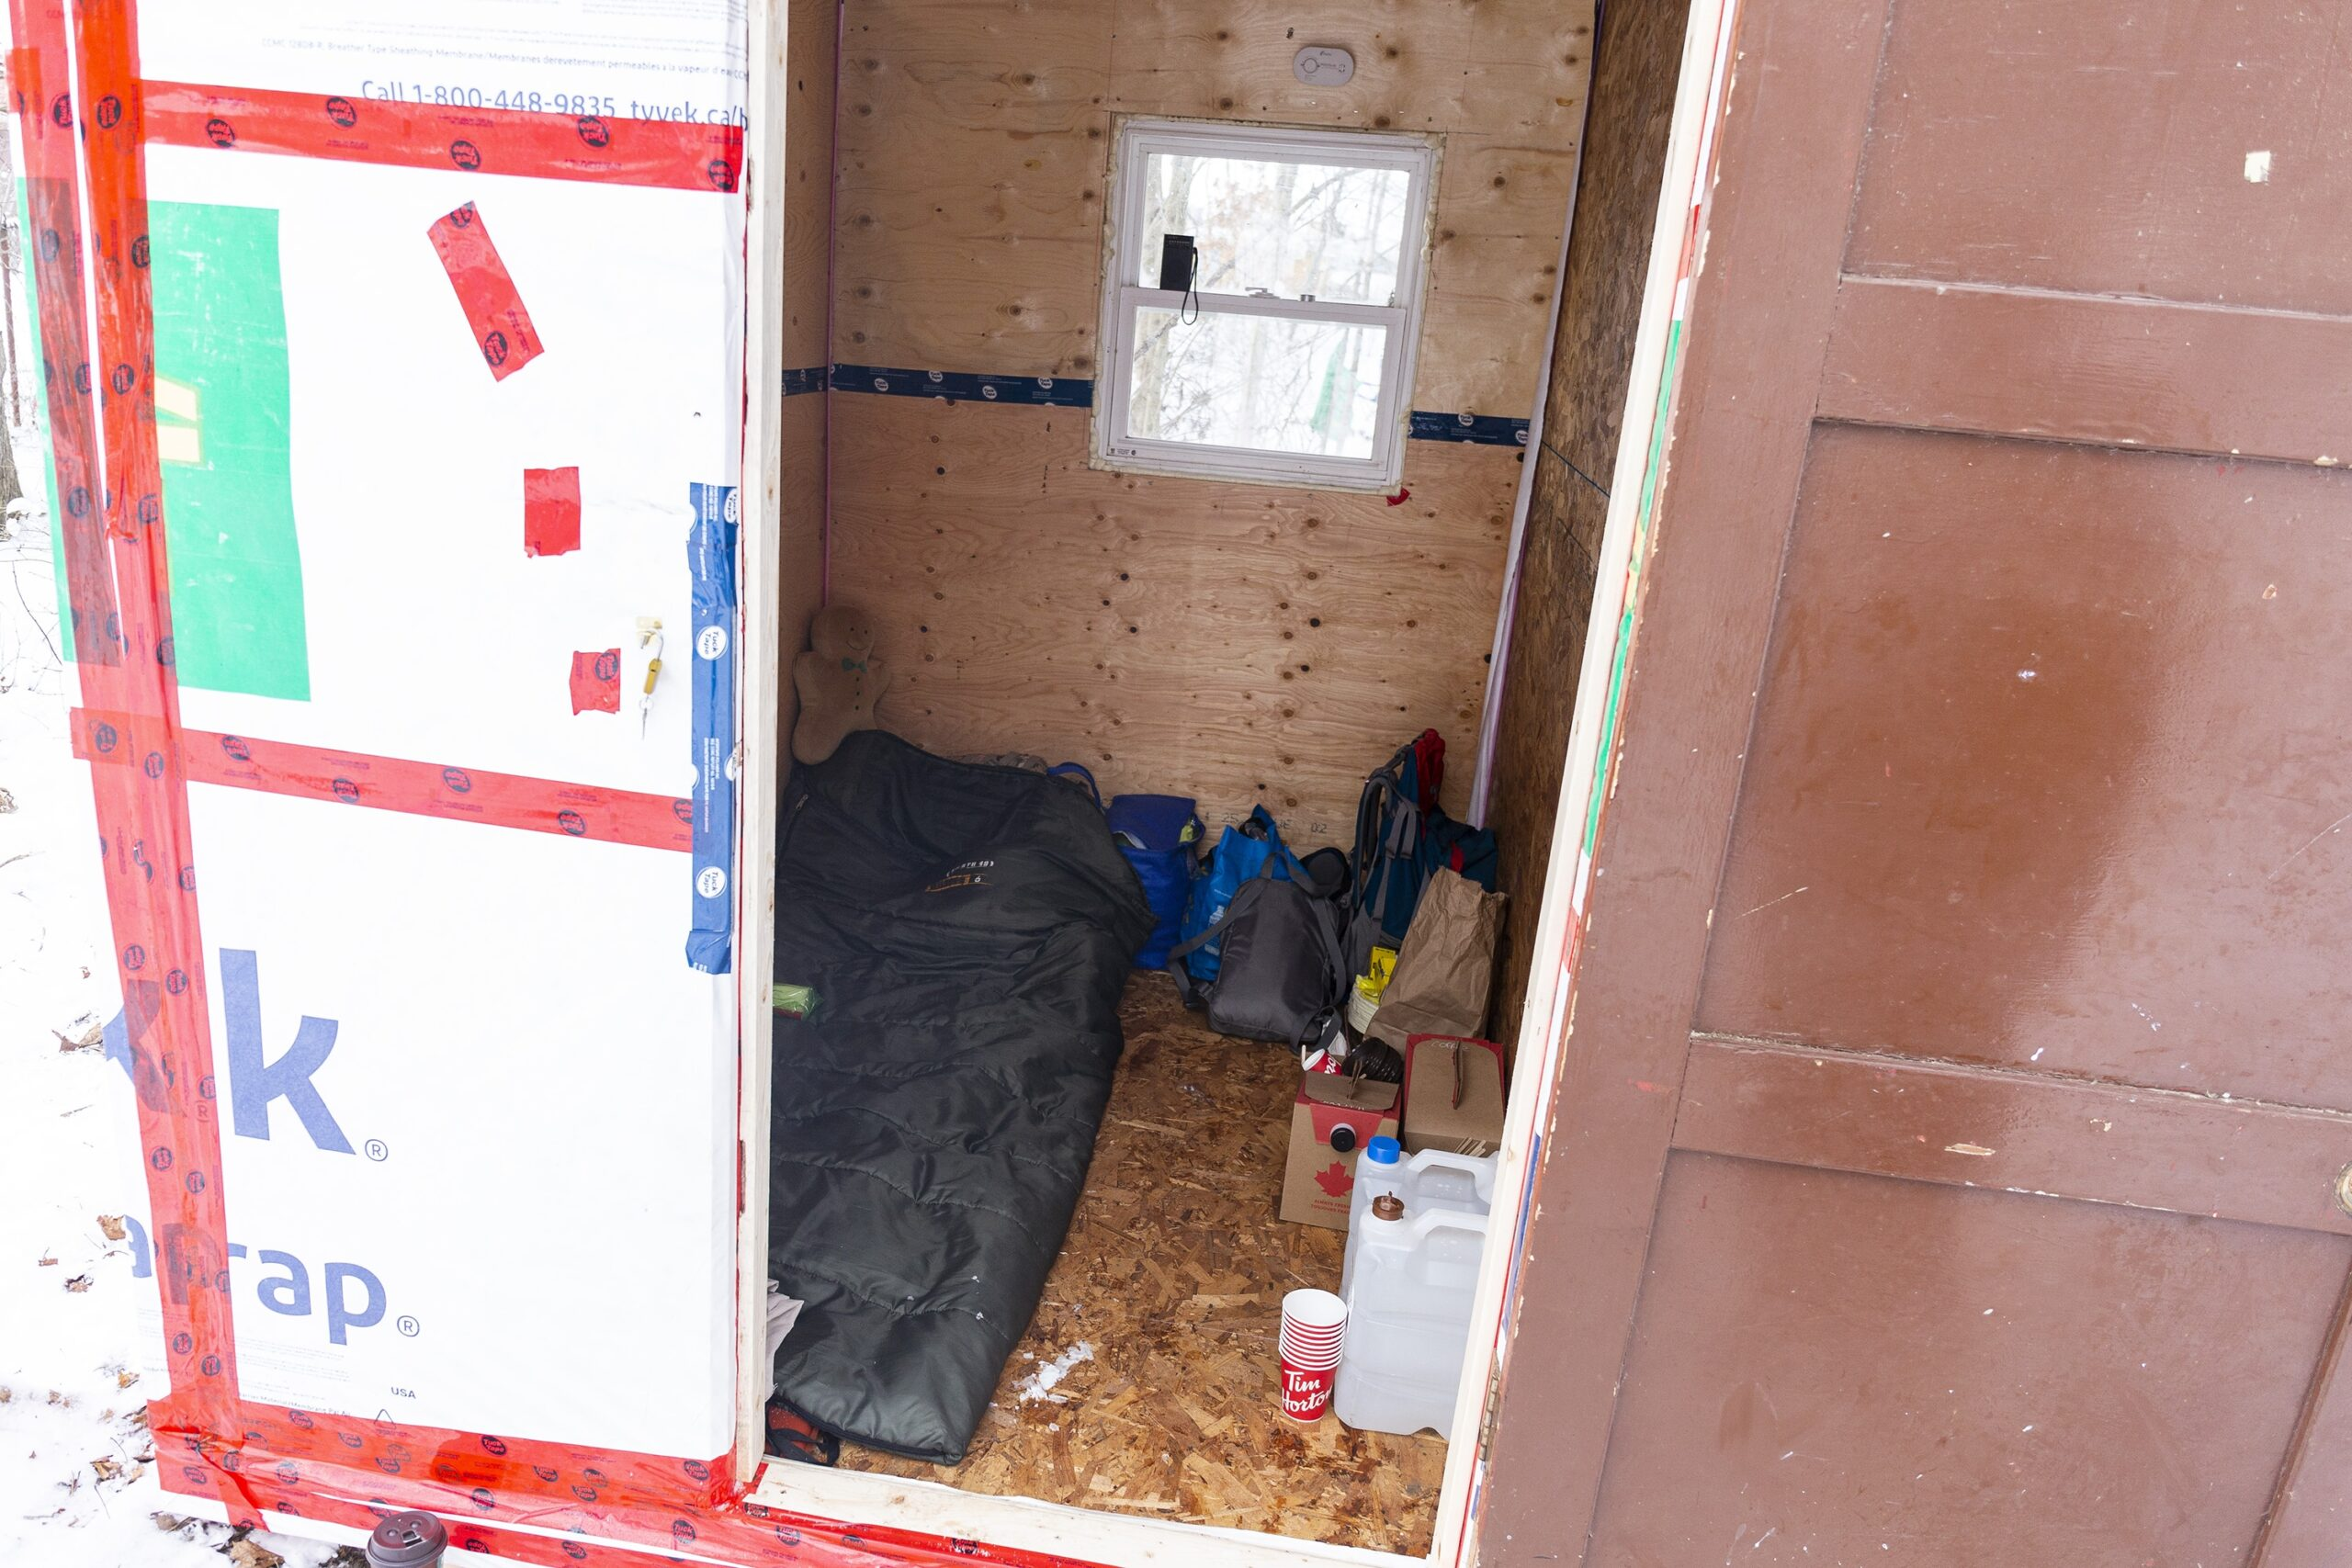 A photo of the inside of a shelter, which is the size of a double bed. There is a wooden door and a small window on the back wall. The inside is made of chipboard and plywood, and you can see a sleeping bag and some personal posessions on the floor.